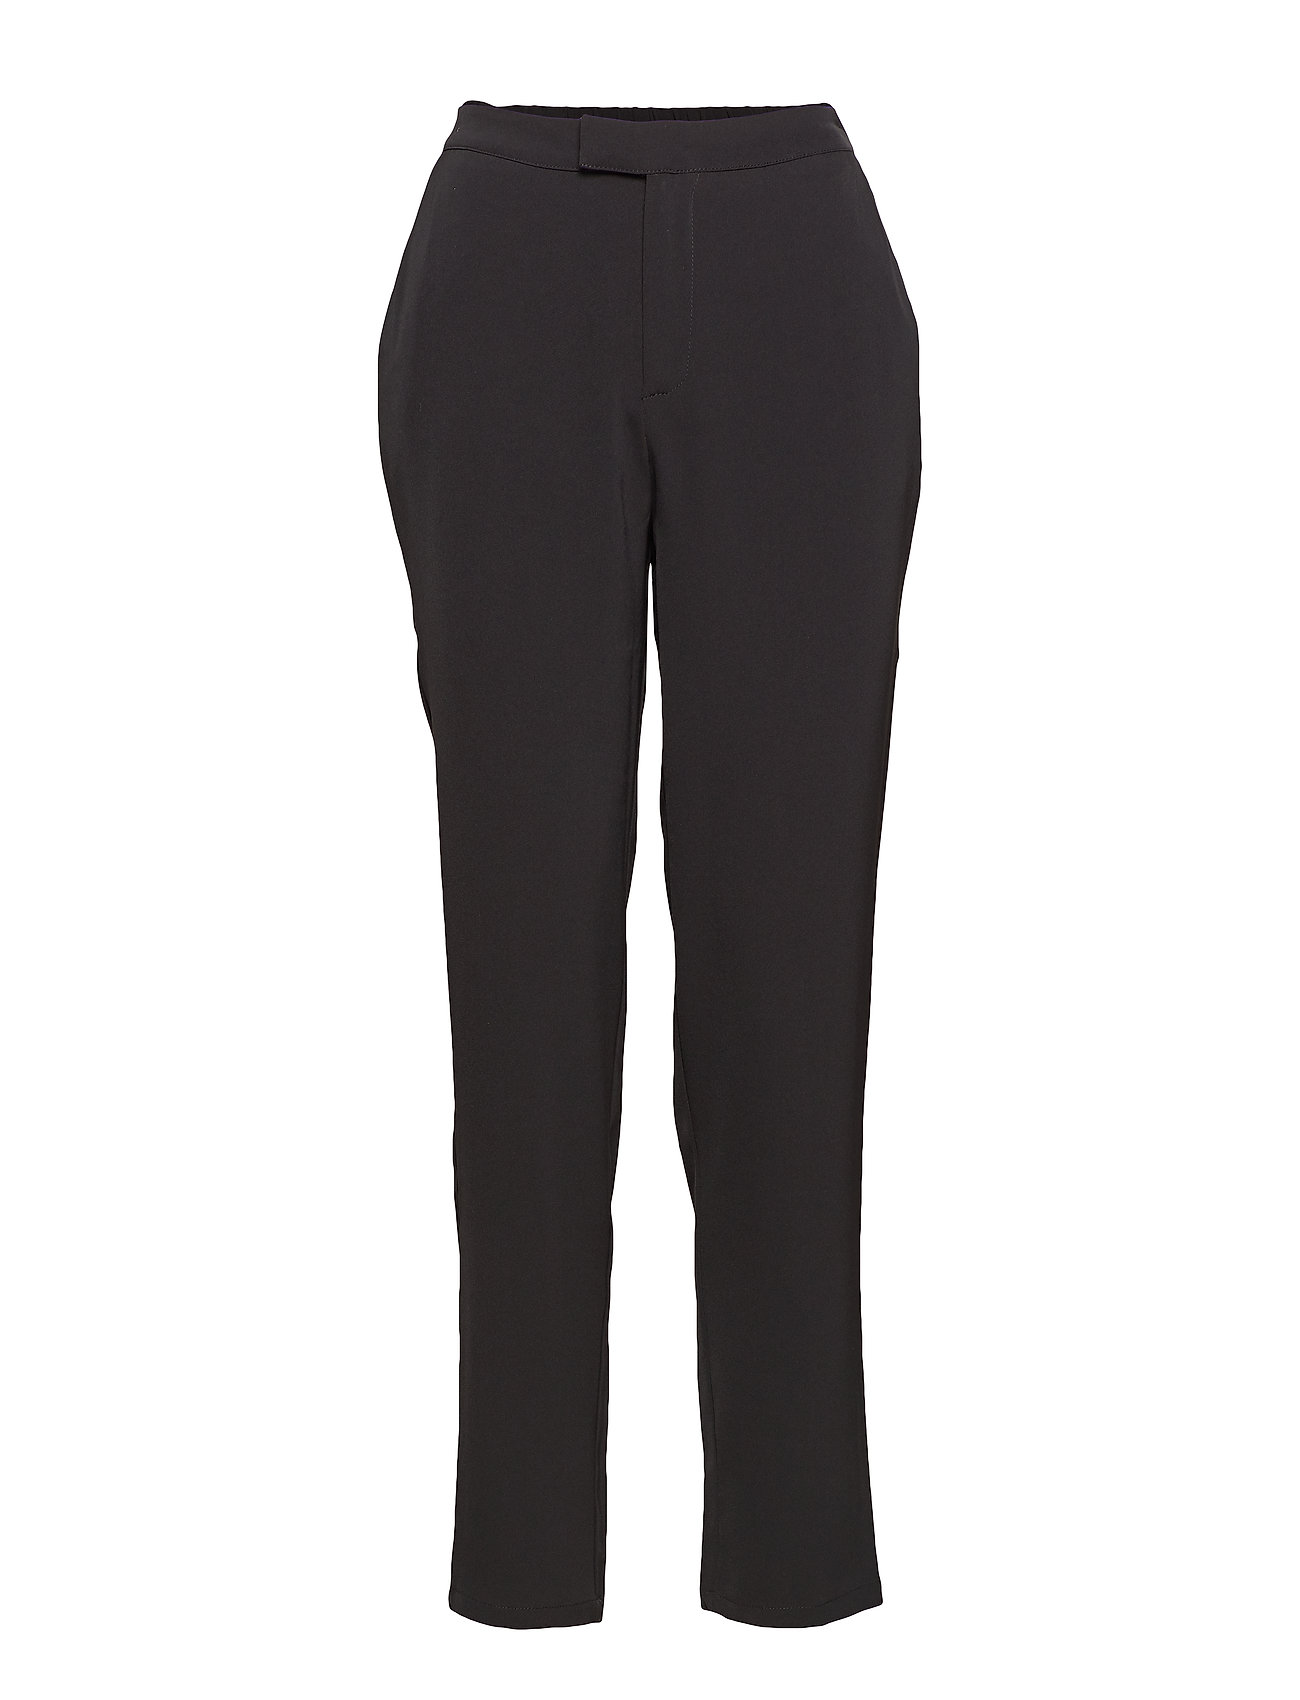 Minus Charlotte pants - BLACK